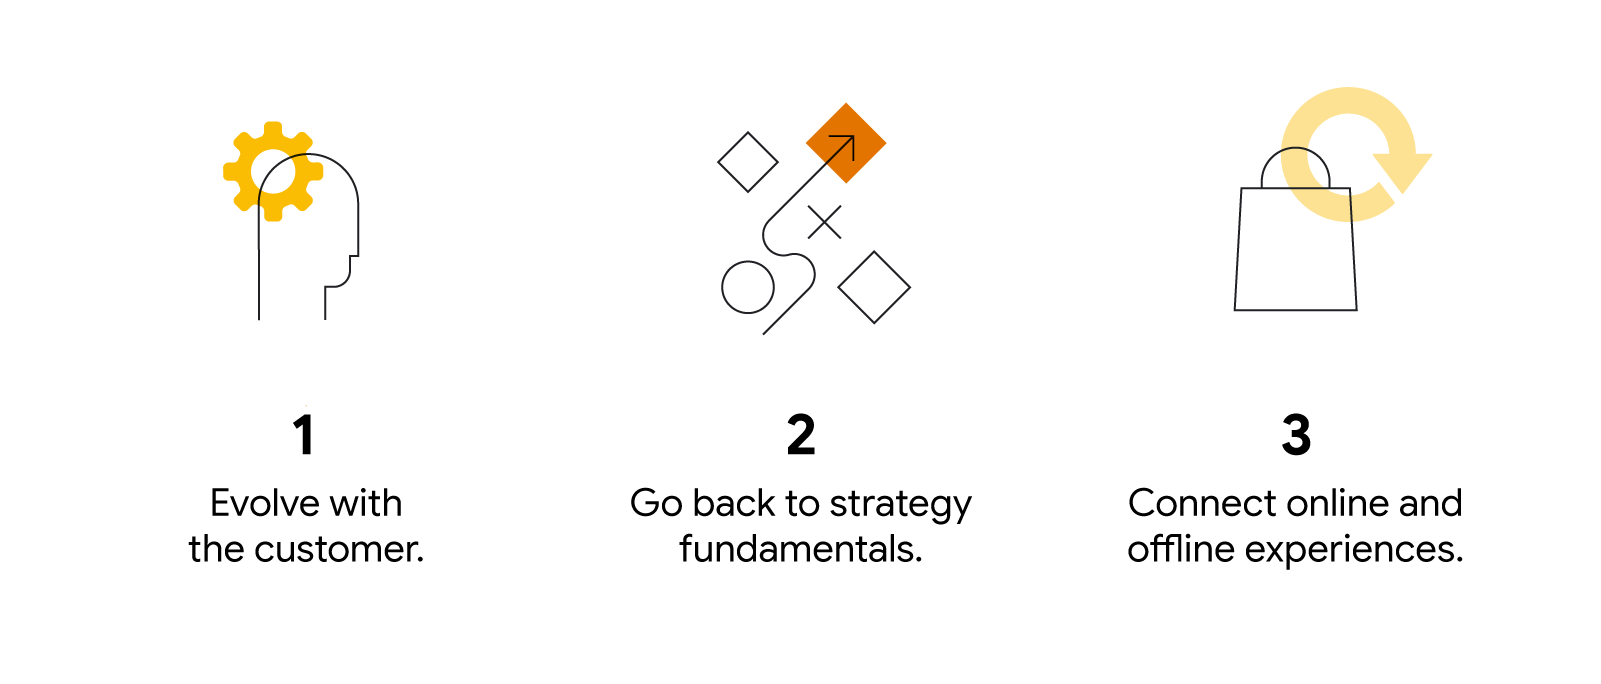 Three illustrated icons accompany the following text: 1. Evolve with the customer. 2. Go back to strategy fundamentals. 3. Connect online and offline experiences.